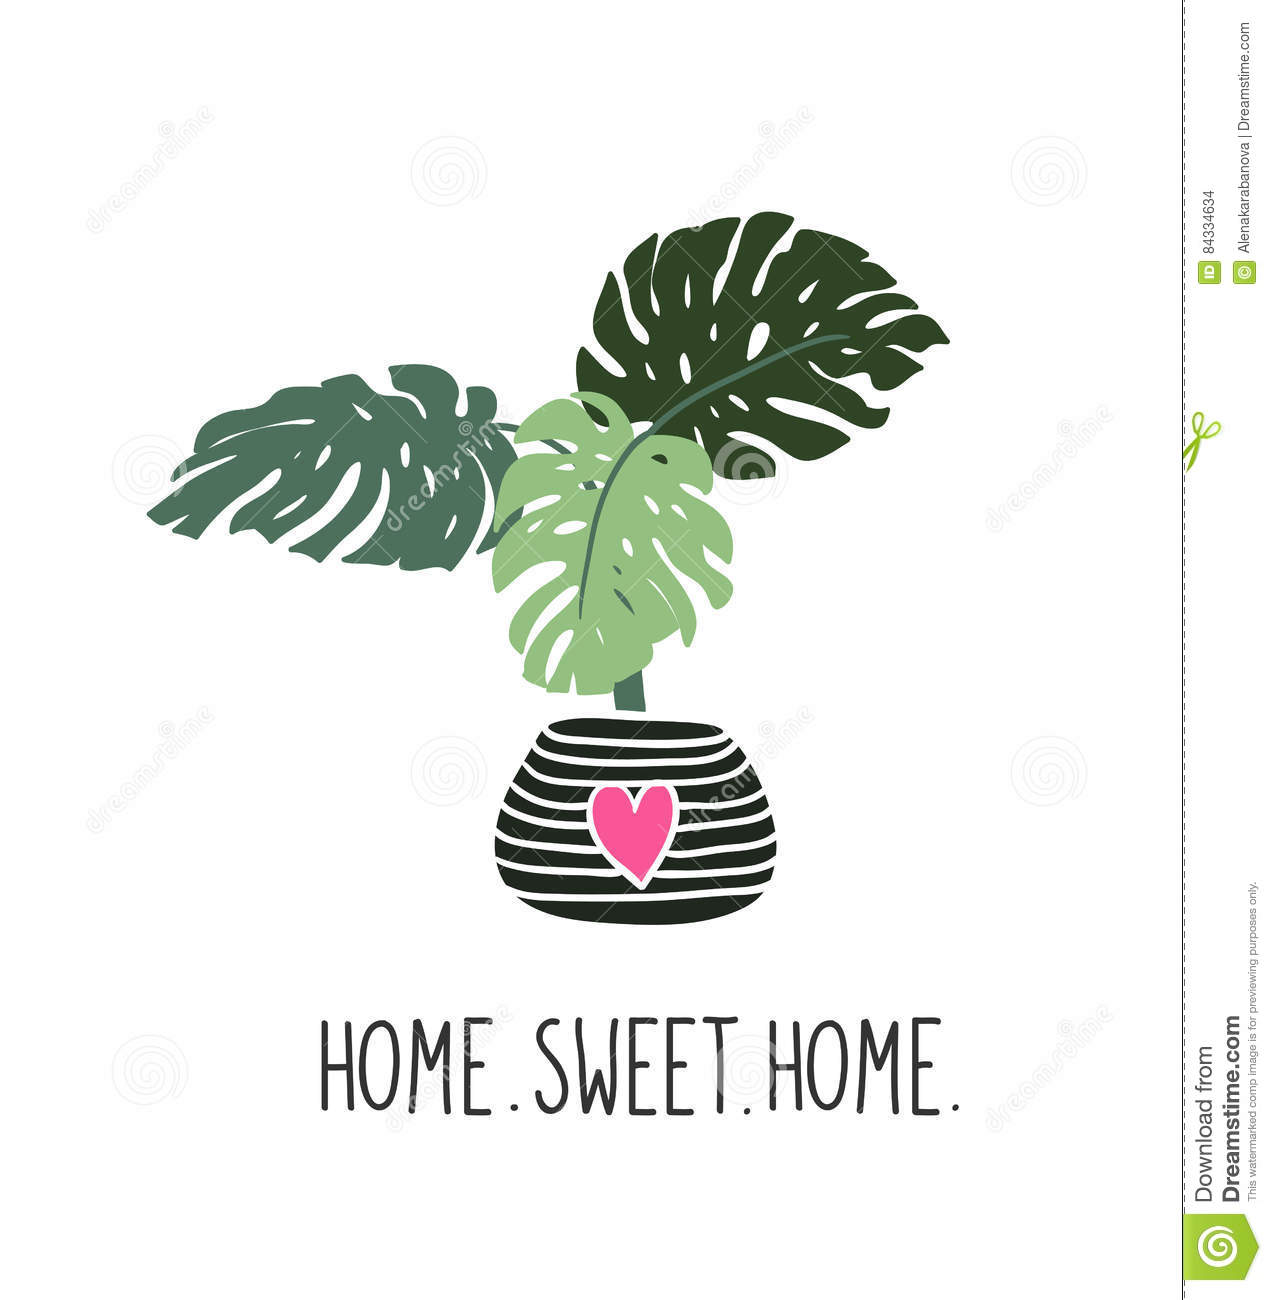 Hand drawn tropical house plants. Scandinavian style illustration. Vector print design with lettering - `home sweet home`.